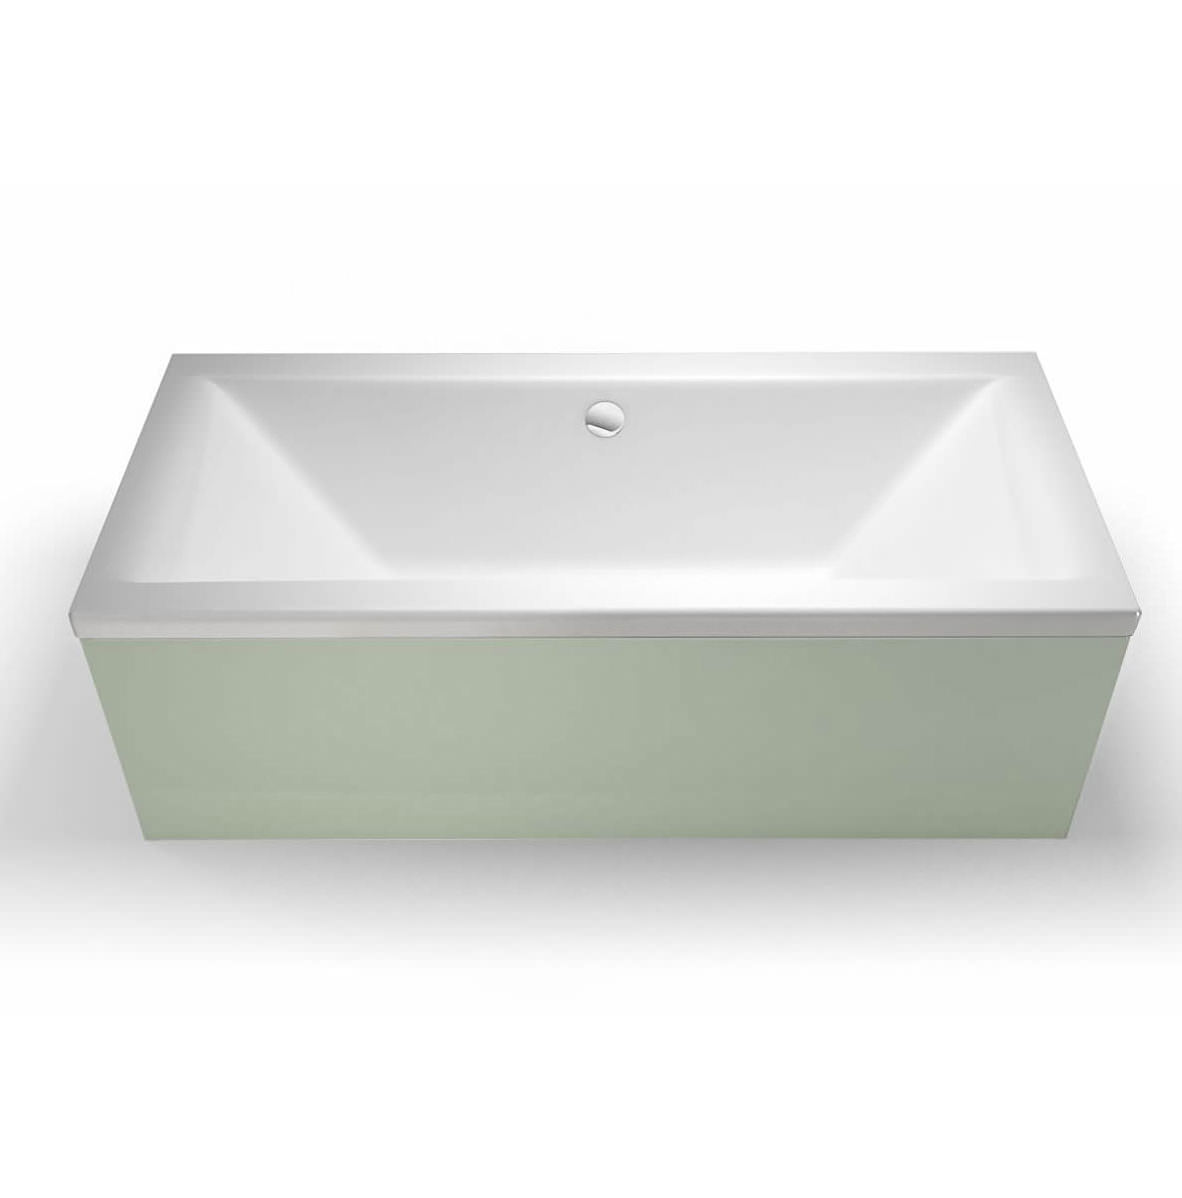 Britton Cleargreen Enviro 1700 X 700mm Double Ended Bath R1